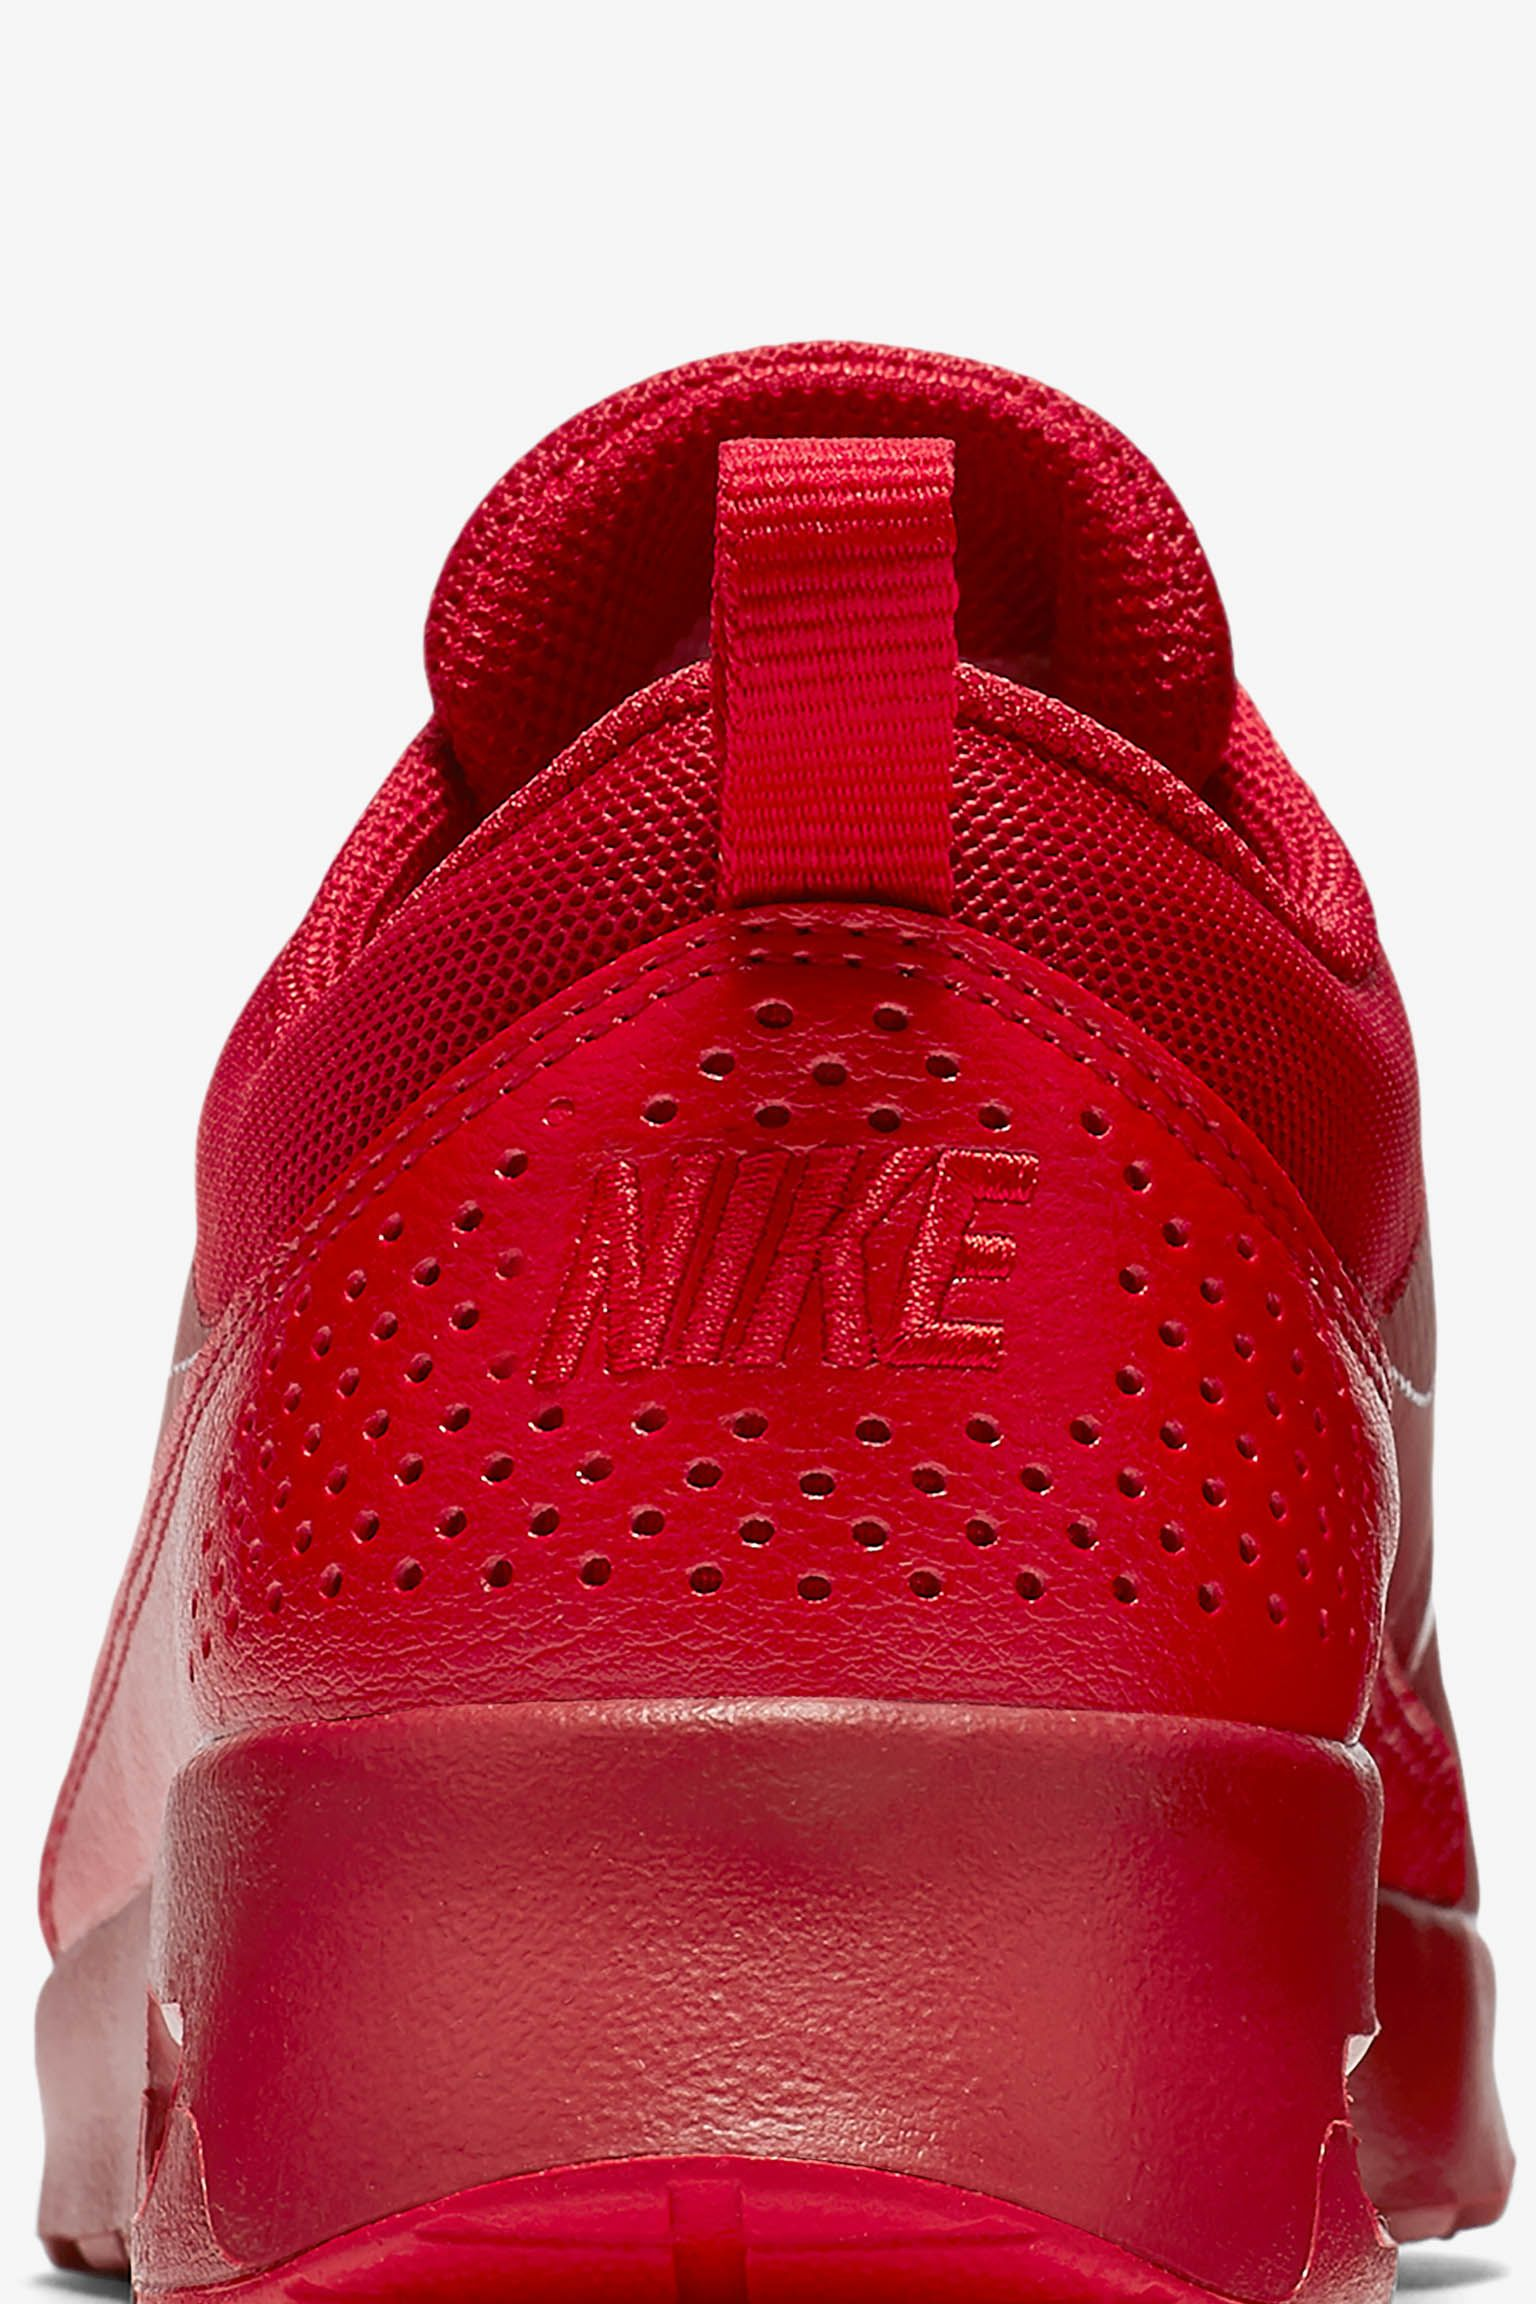 Women's Nike Air Max Thea 'Ruby Red'